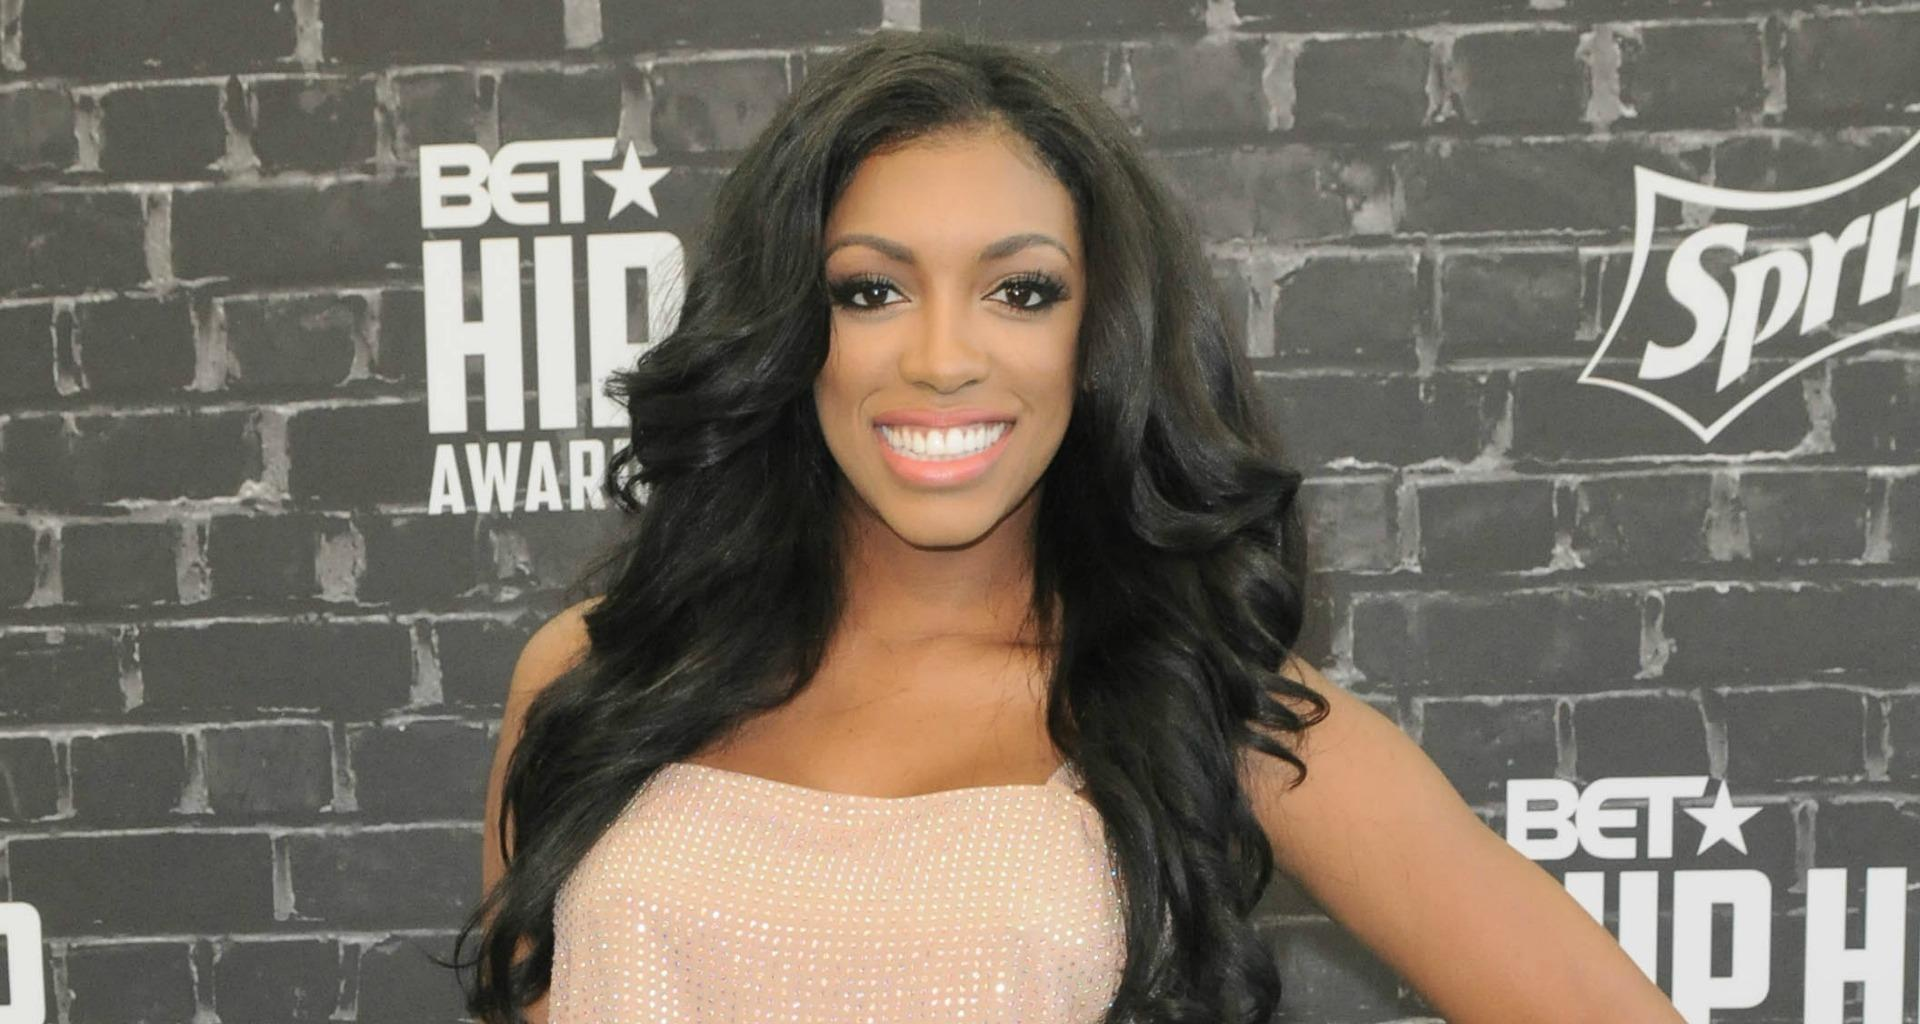 Porsha Williams' Latest Photos With Baby Pilar Jhena And Her Great Grandmother Have Fans In Awe